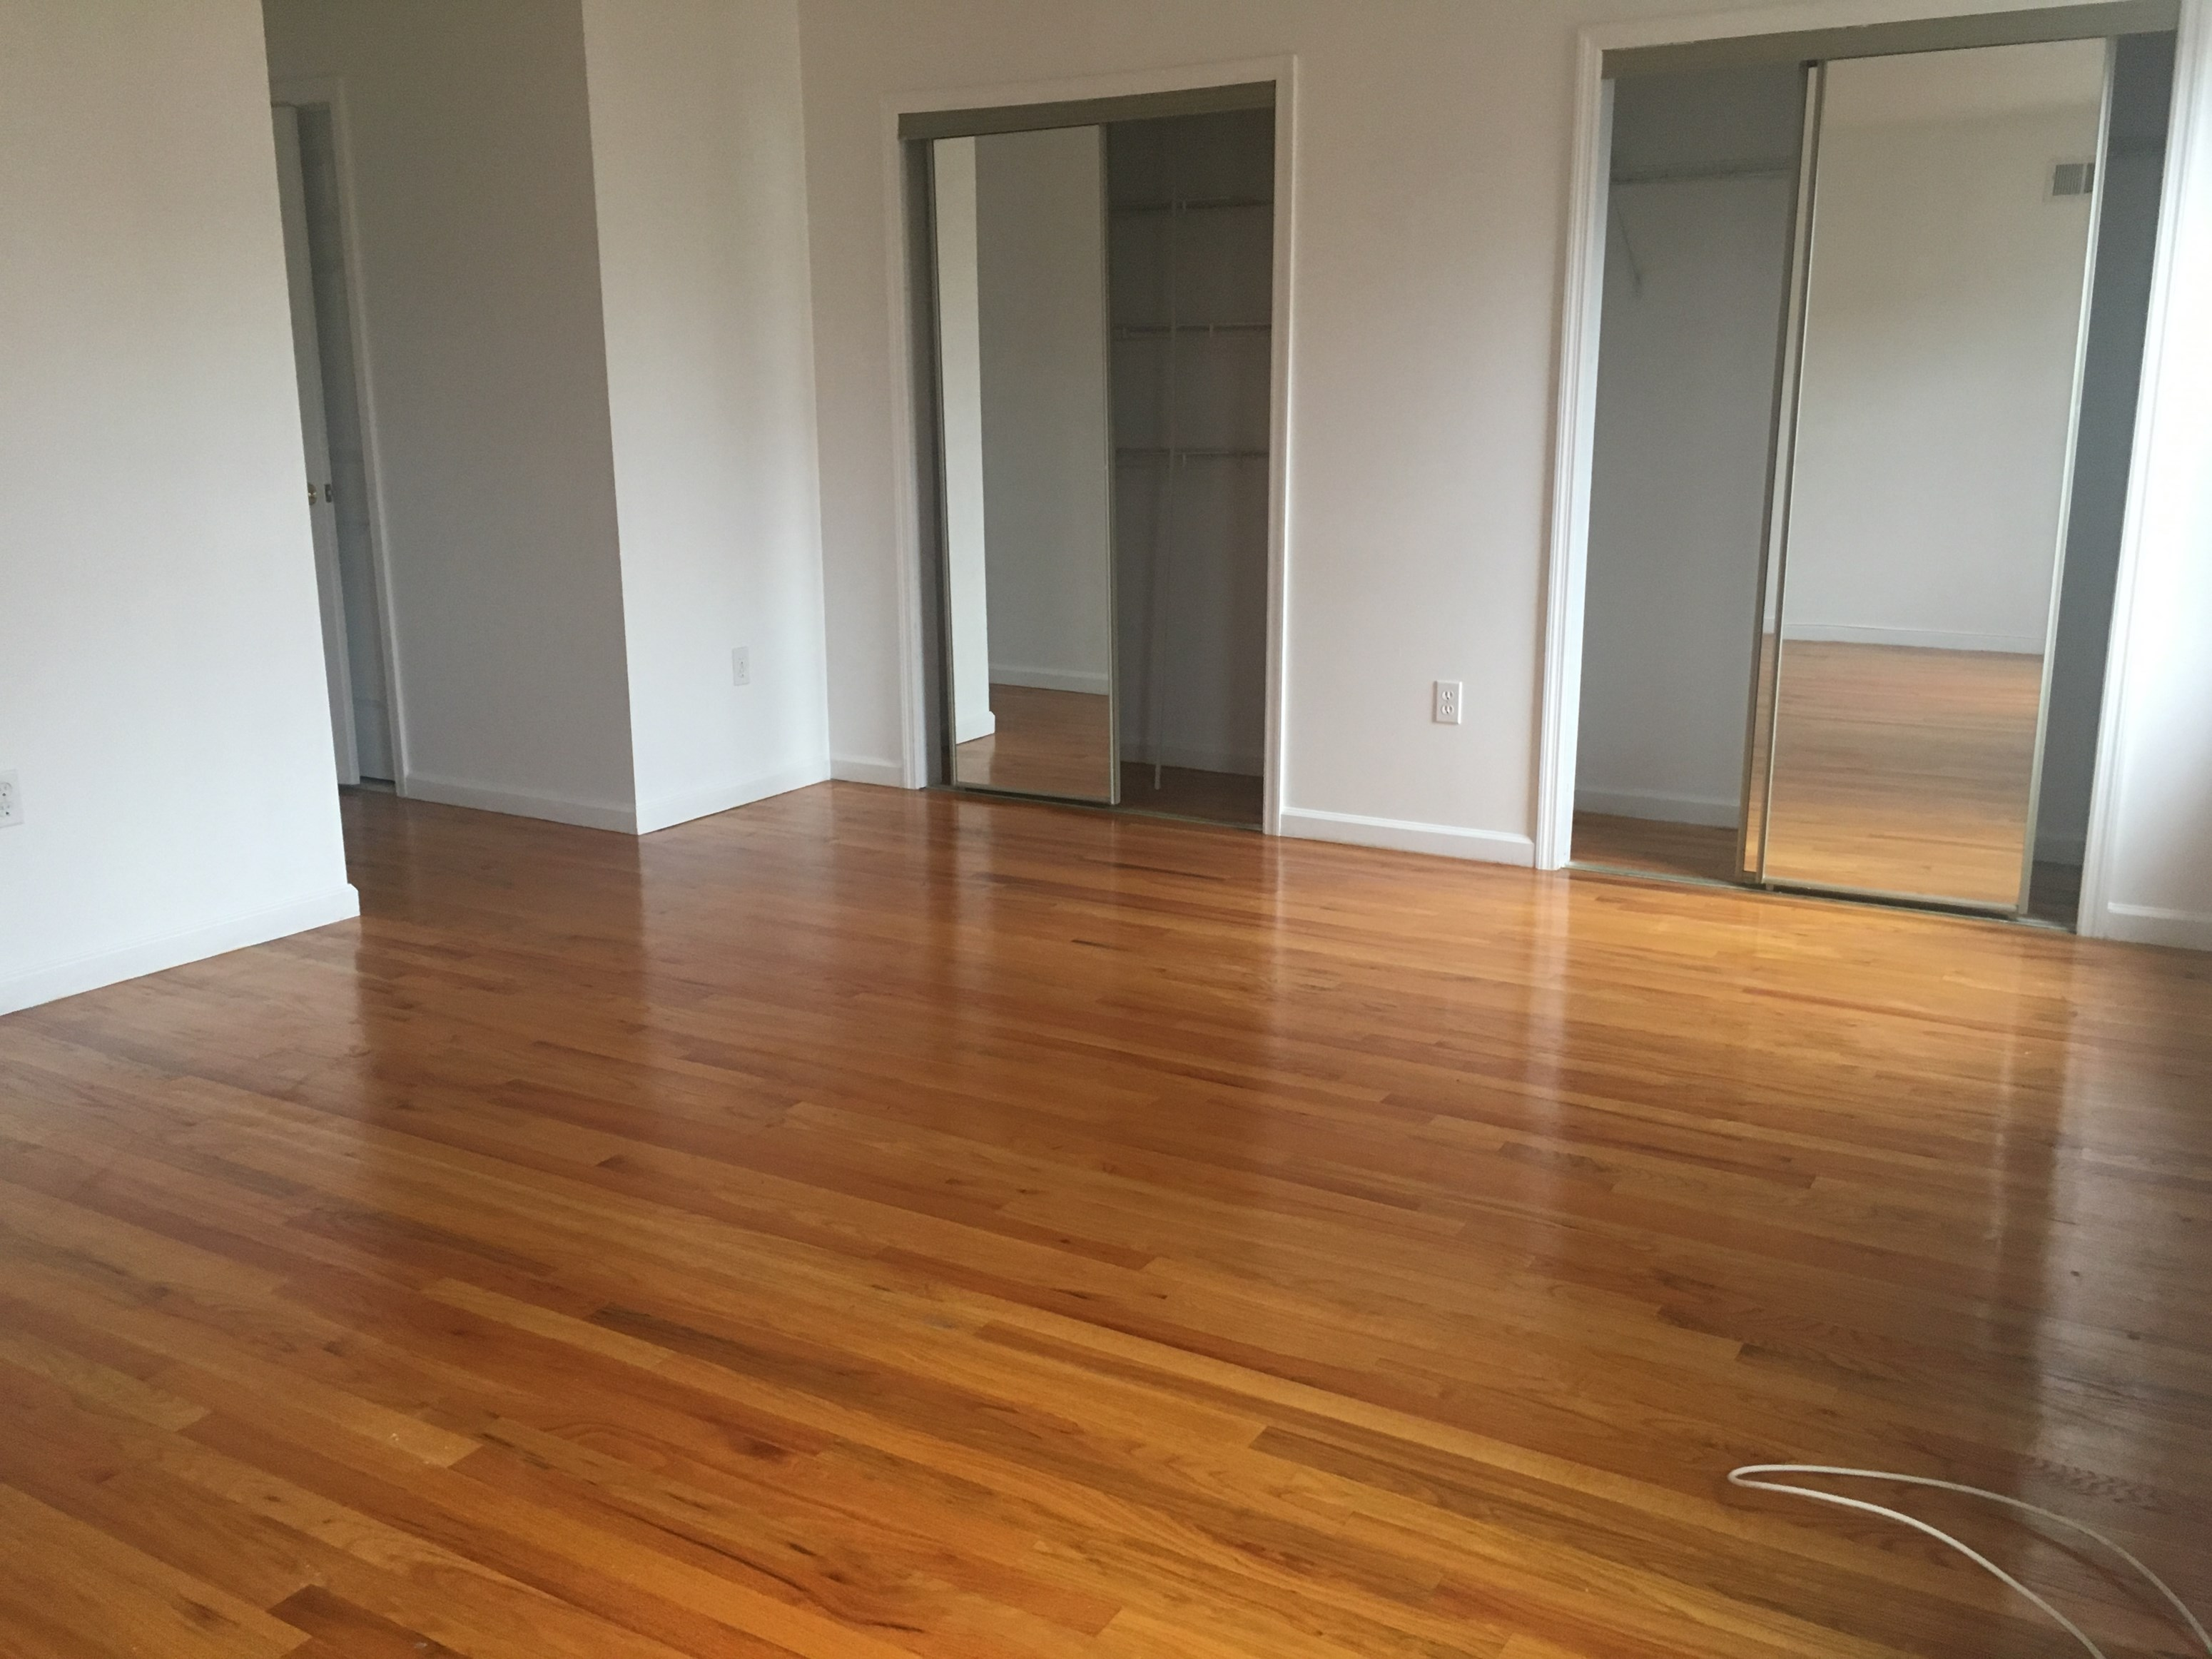 3 Bedroom Apartment In Jersey City Nj 3 Bhk Apartments